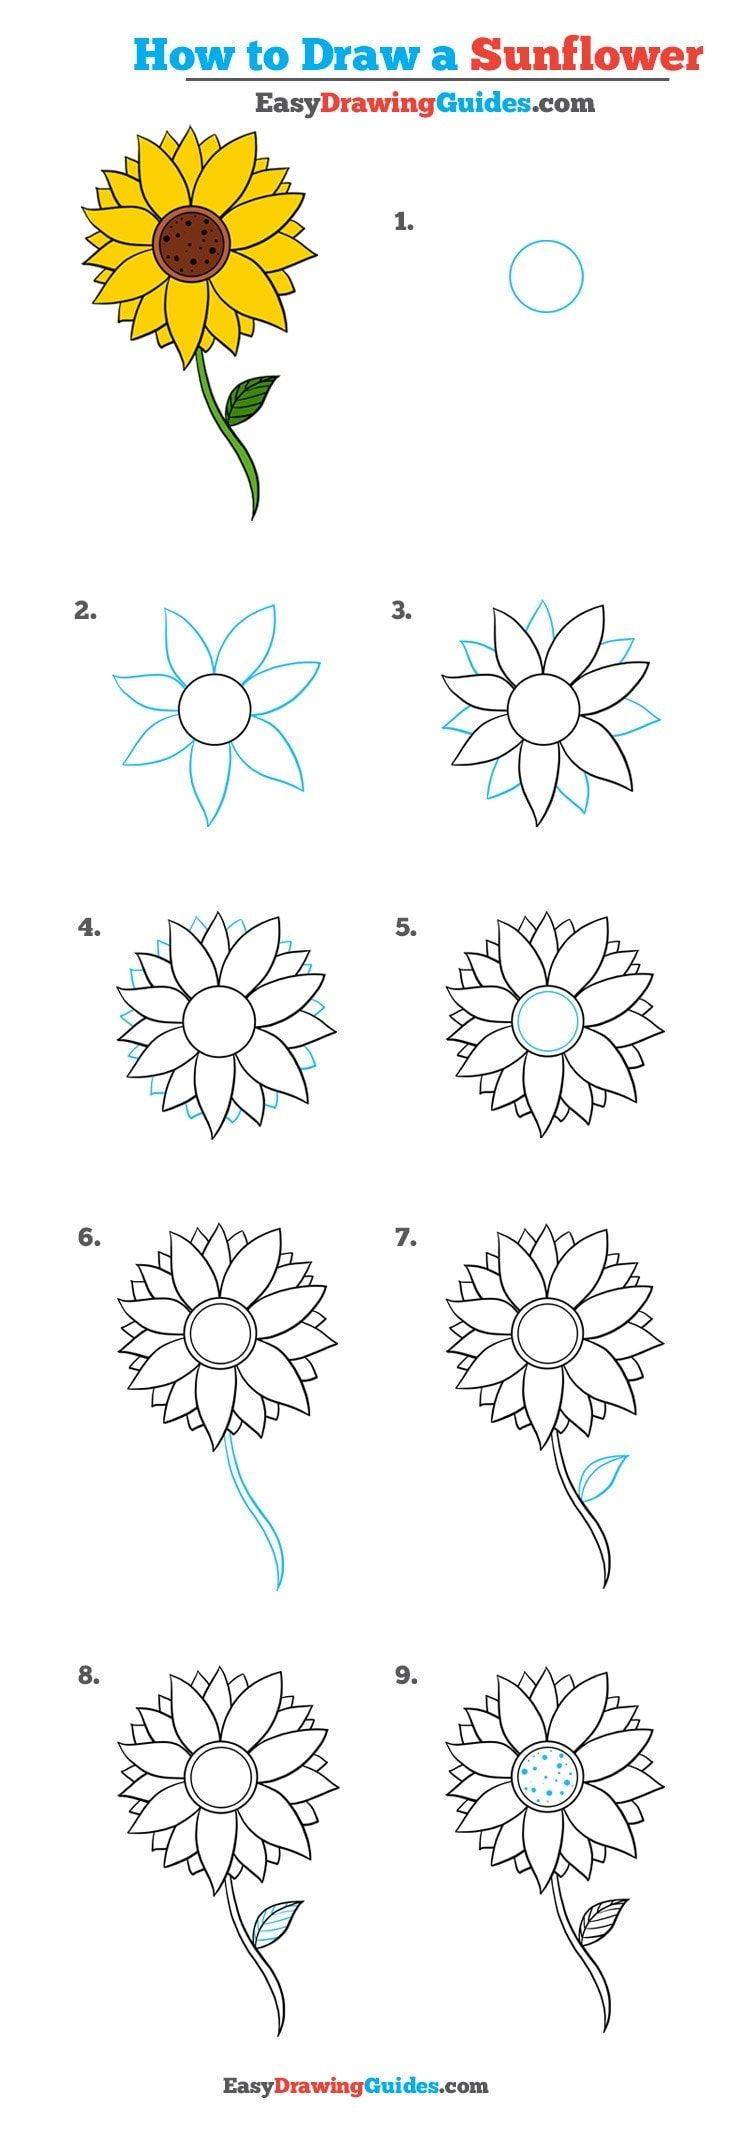 How To Draw A Sunflower Really Easy Drawing Tutorial Flower Drawing Tutorials Flower Drawing Easy Flower Drawings